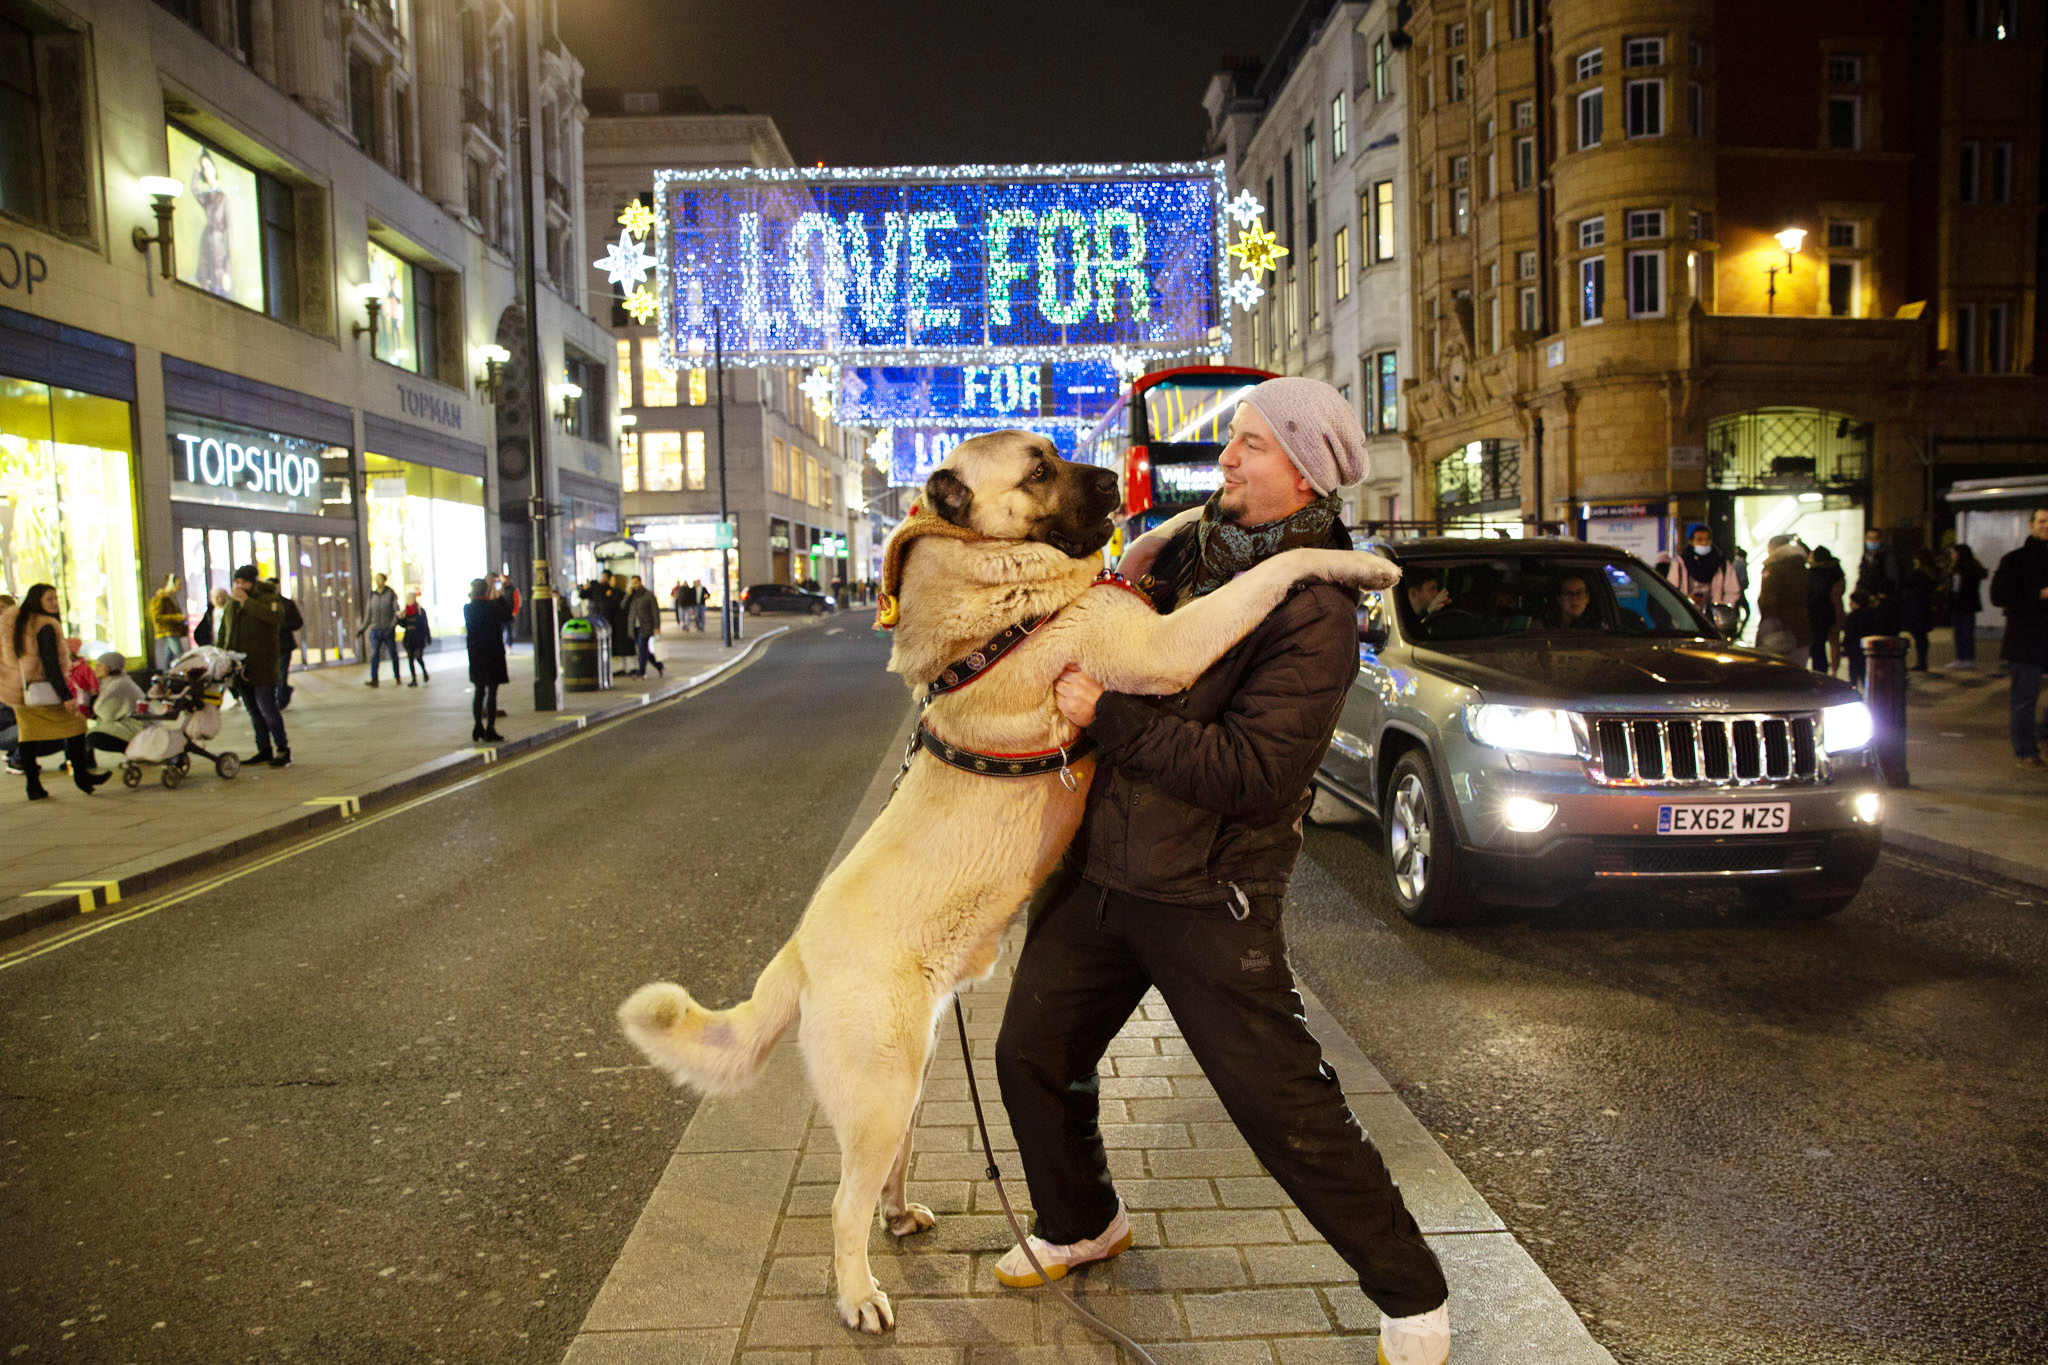 LONDON, UNITED KINGDOM - NOVEMBER 29: An Anatolian shepherd dog, brought by the owner from Turkey, is seen being taken for a walk at the streets of London, on November 29, 2020 in London, United Kingdom. The dog attracted the attention of people in the streets. (Photo by Yunus Dalgic/Anadolu Agency via Getty Images)